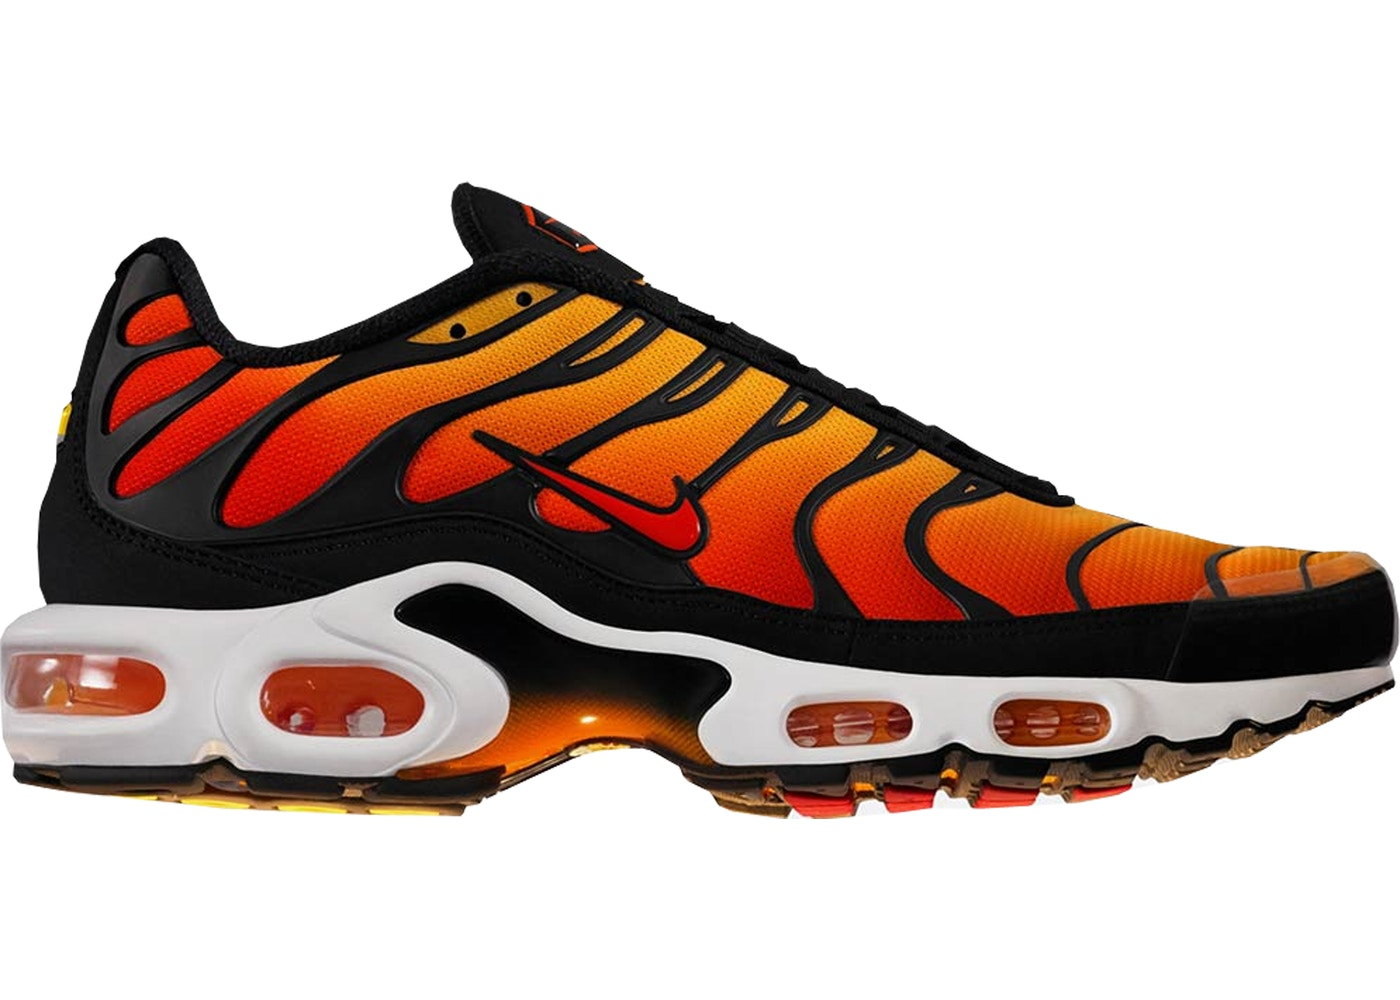 Buy Nike Air Max Plus Shoes & Deadstock Sneakers